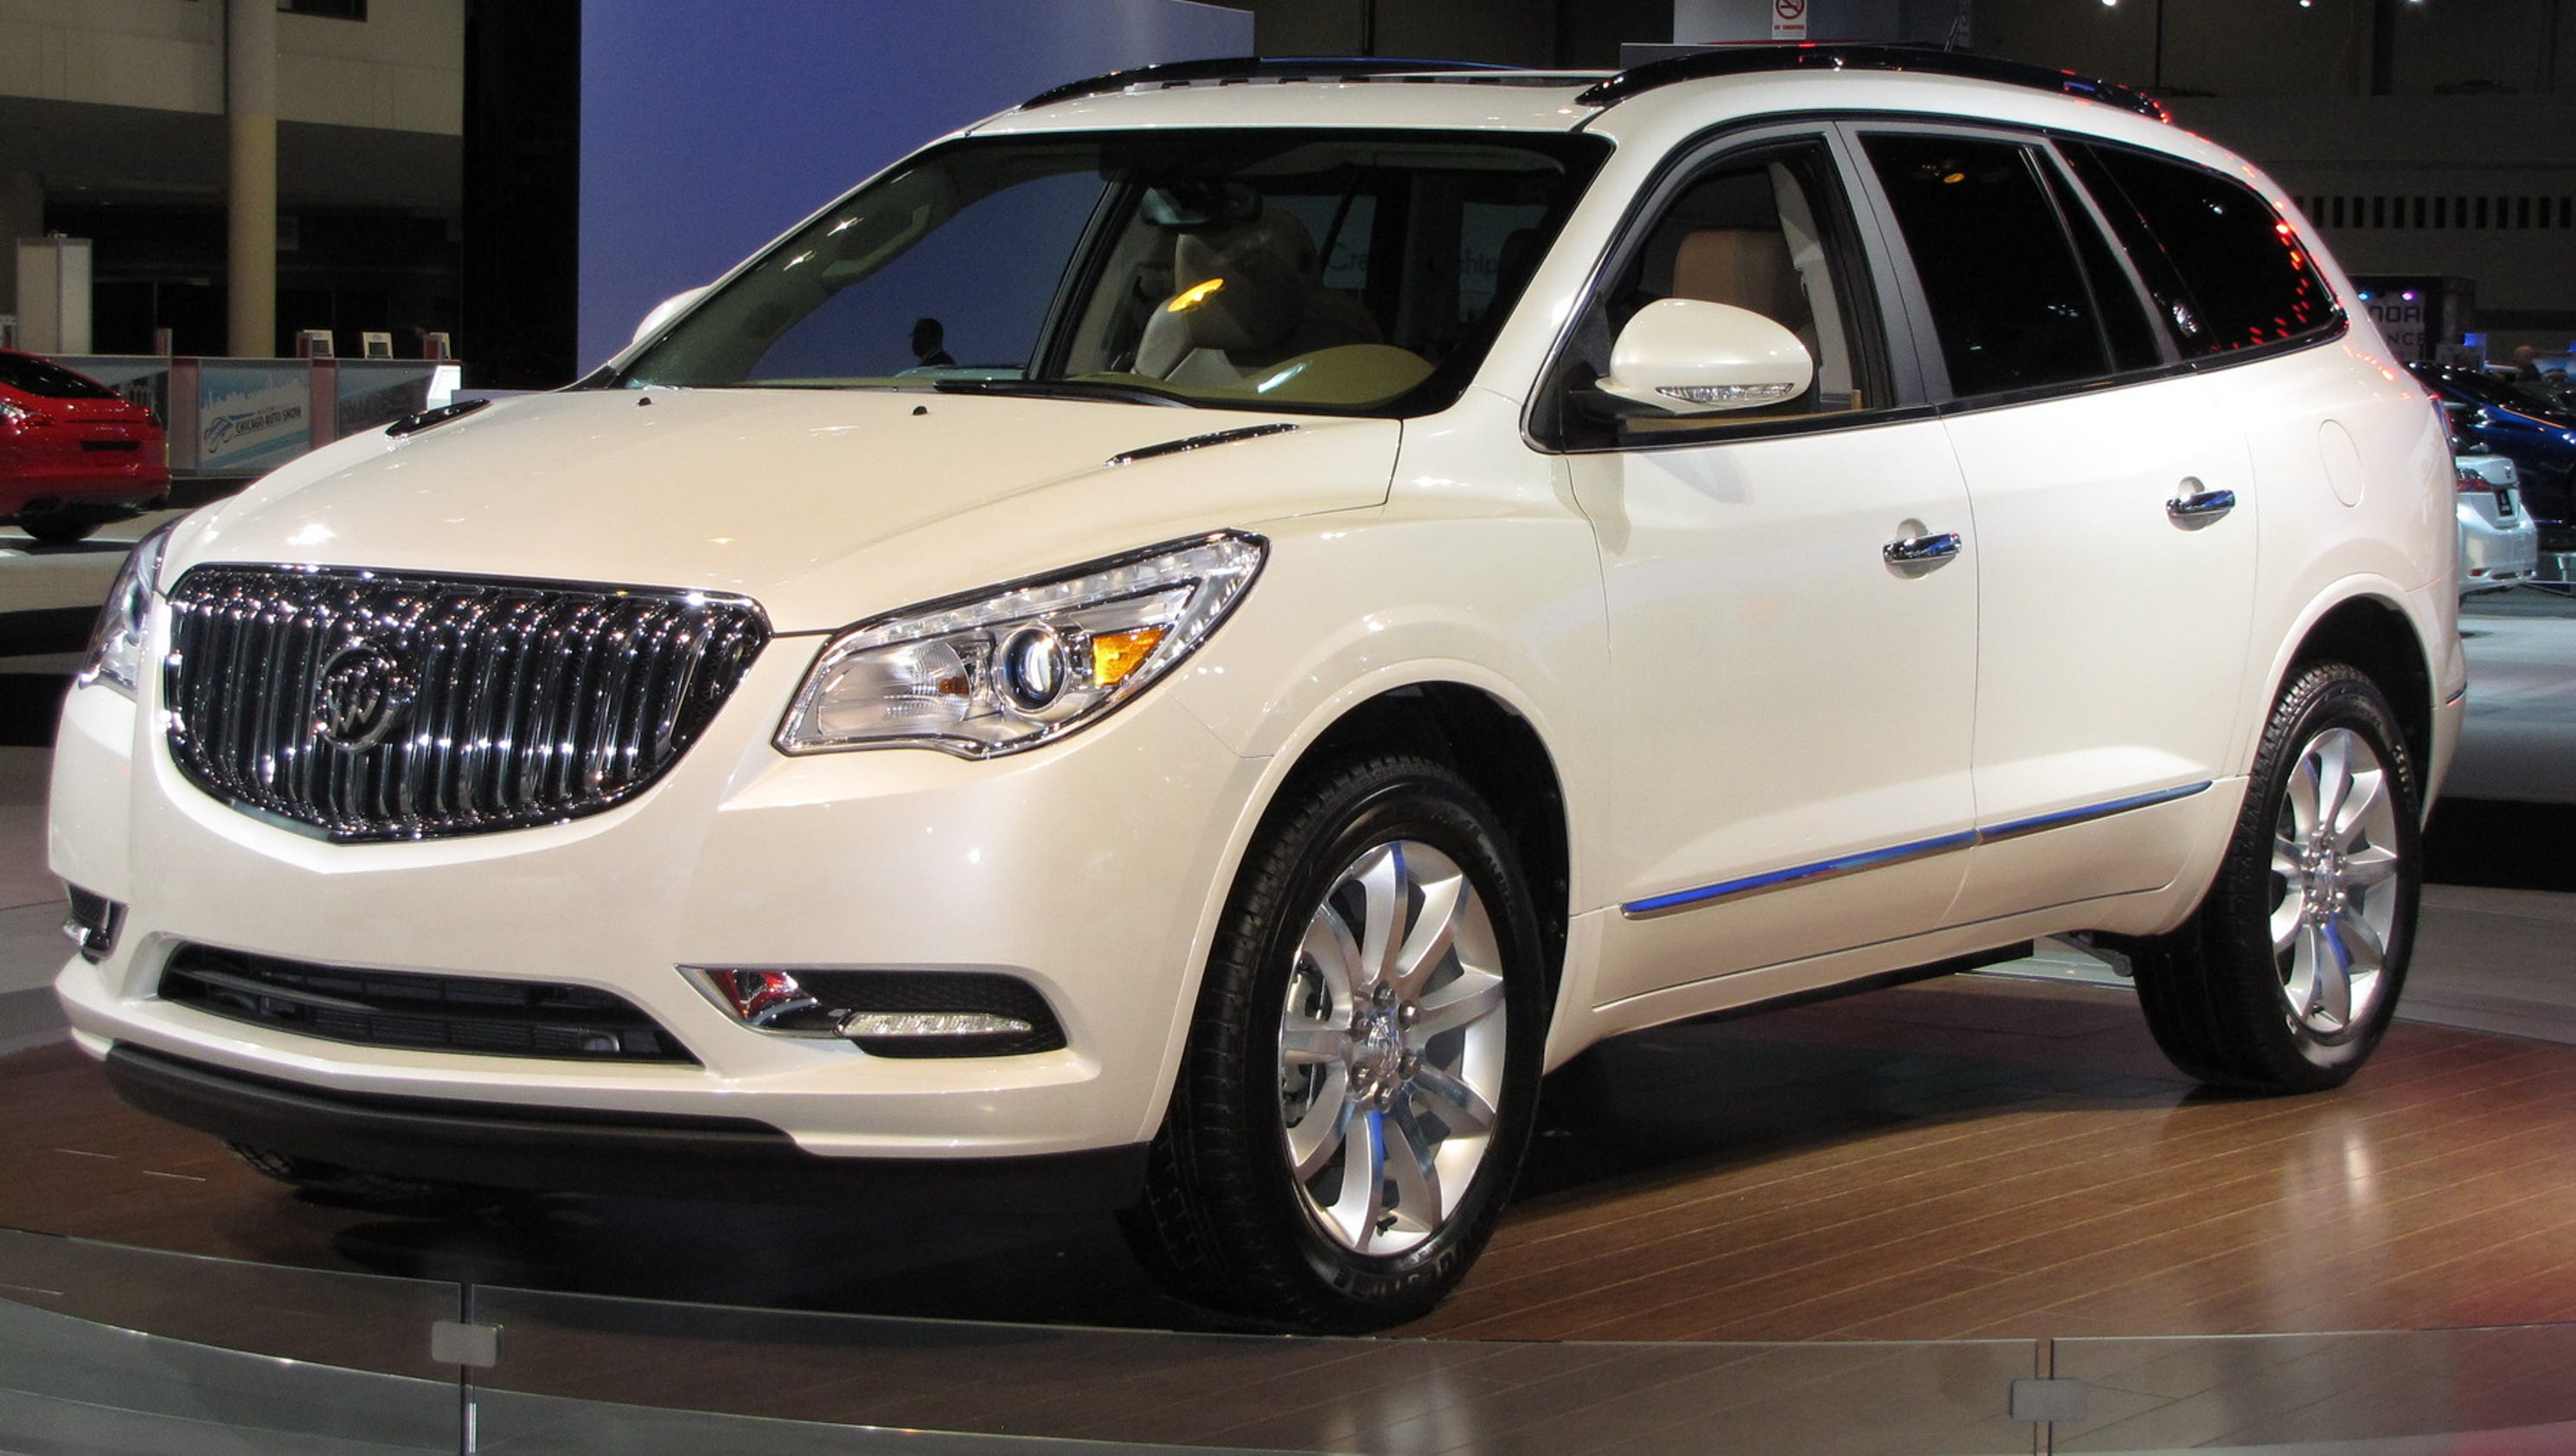 enclave database buick images auto and information pictures com specs